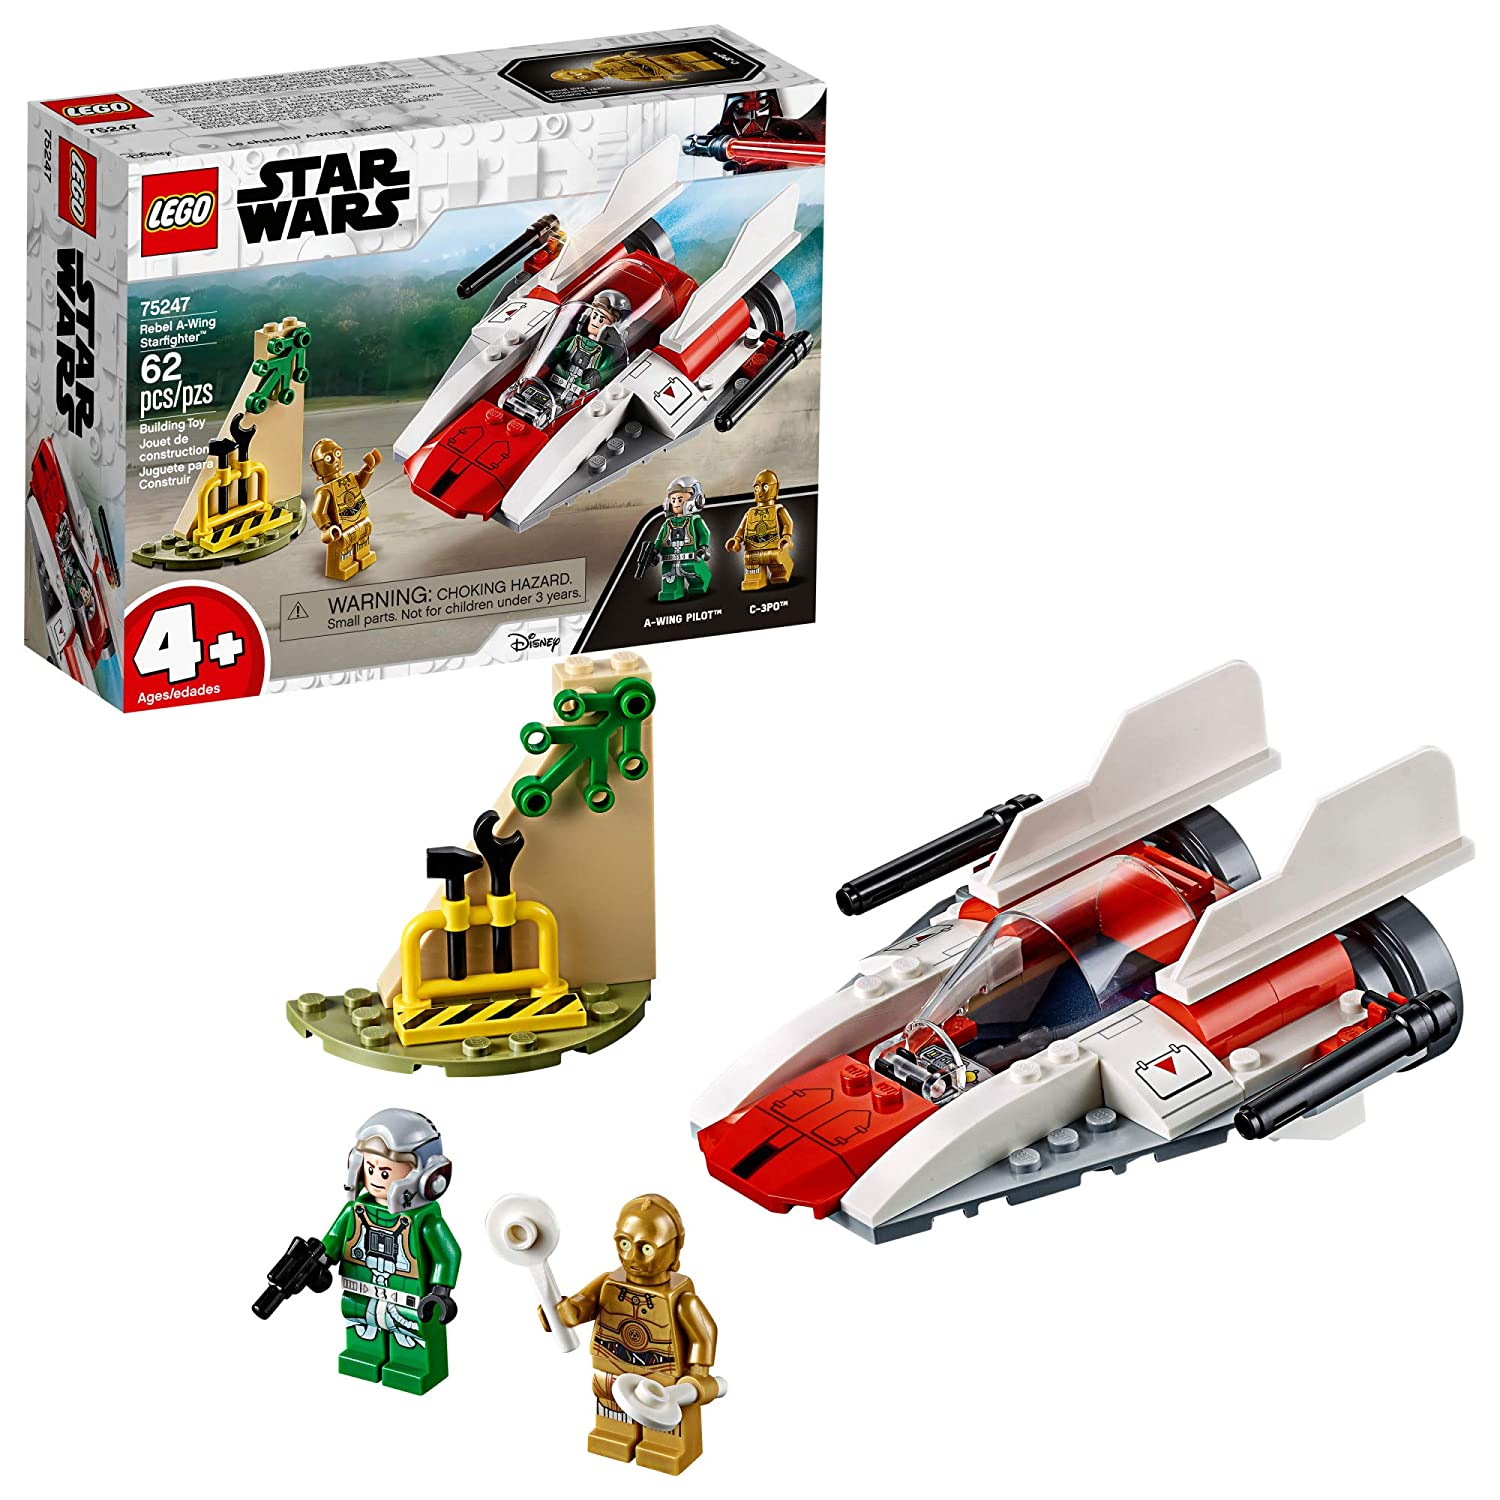 Amazoncom Lego Star Wars Rebel A Wing Starfighter 75247 4